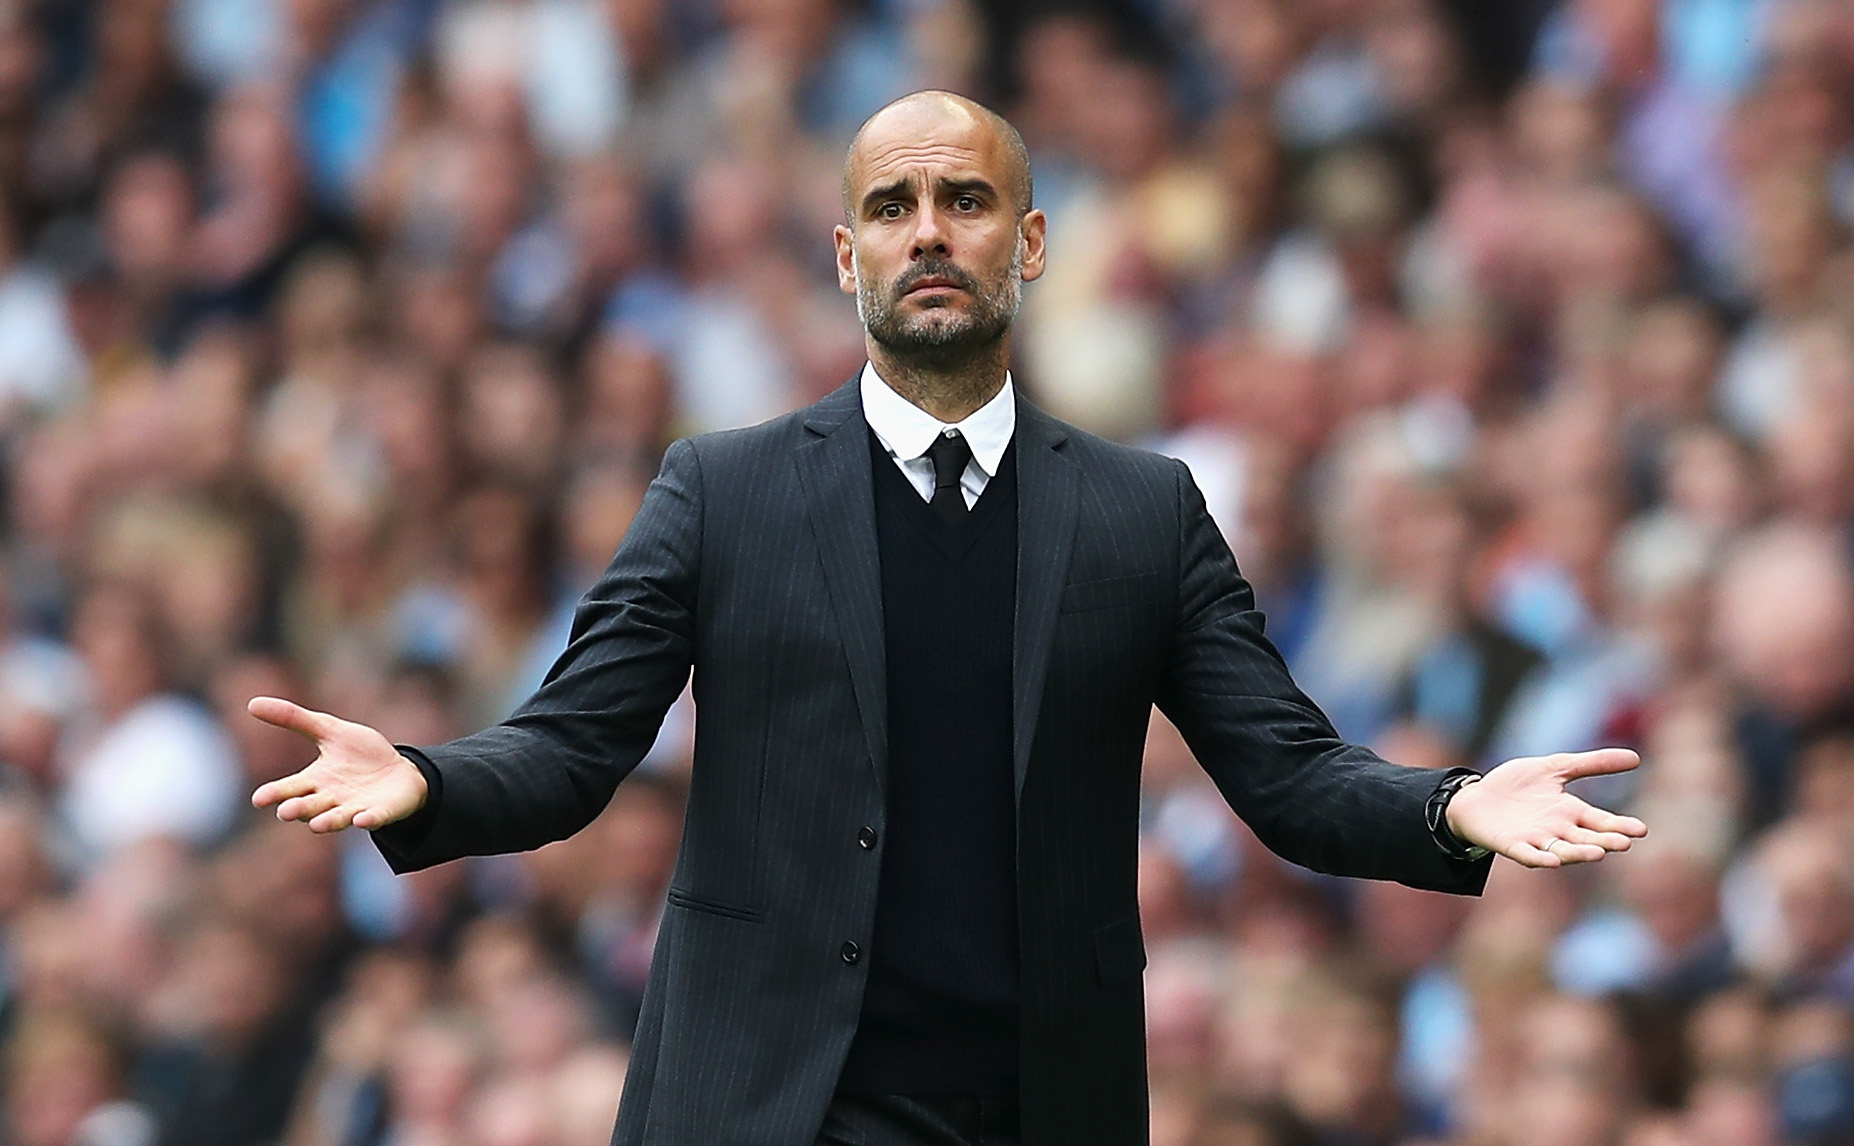 Pep Guardiola made Bayern Munich boring and he got lucky at Barcelona, claims Manchester United legend Peter Schmeichel